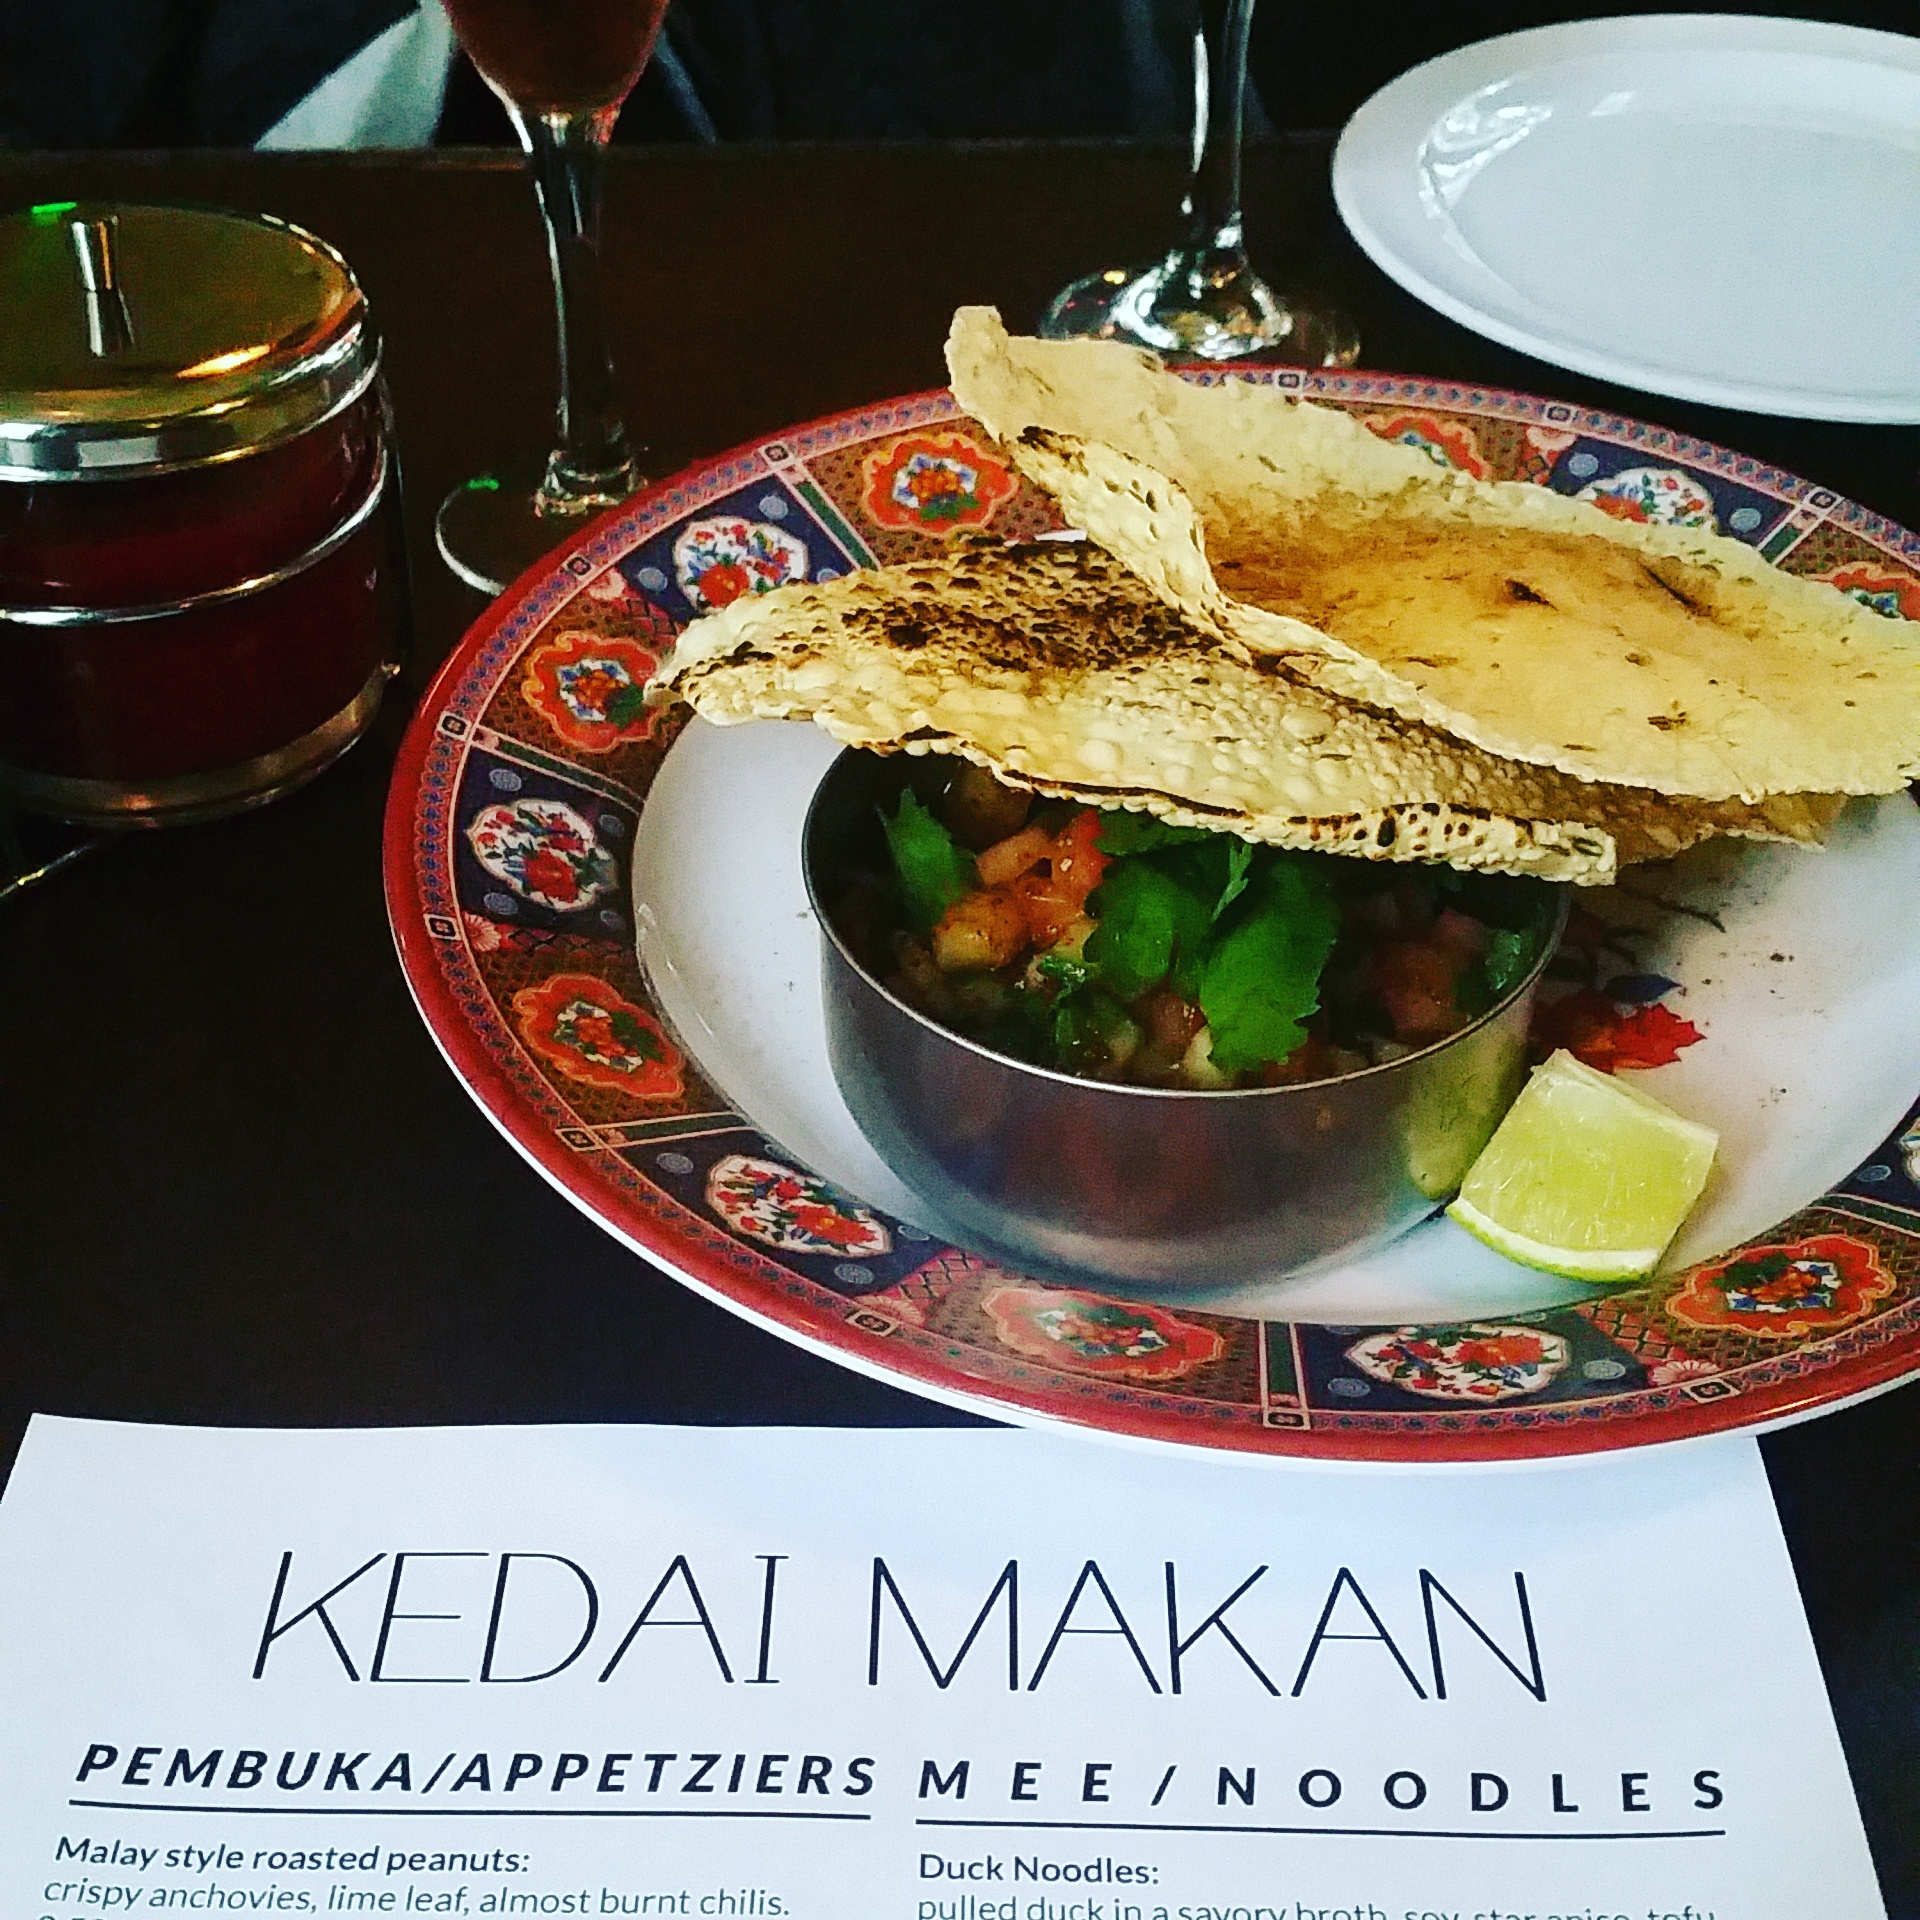 Malaysian food in seattle kedai makan snacking in the kitchen img20150925175815 forumfinder Gallery